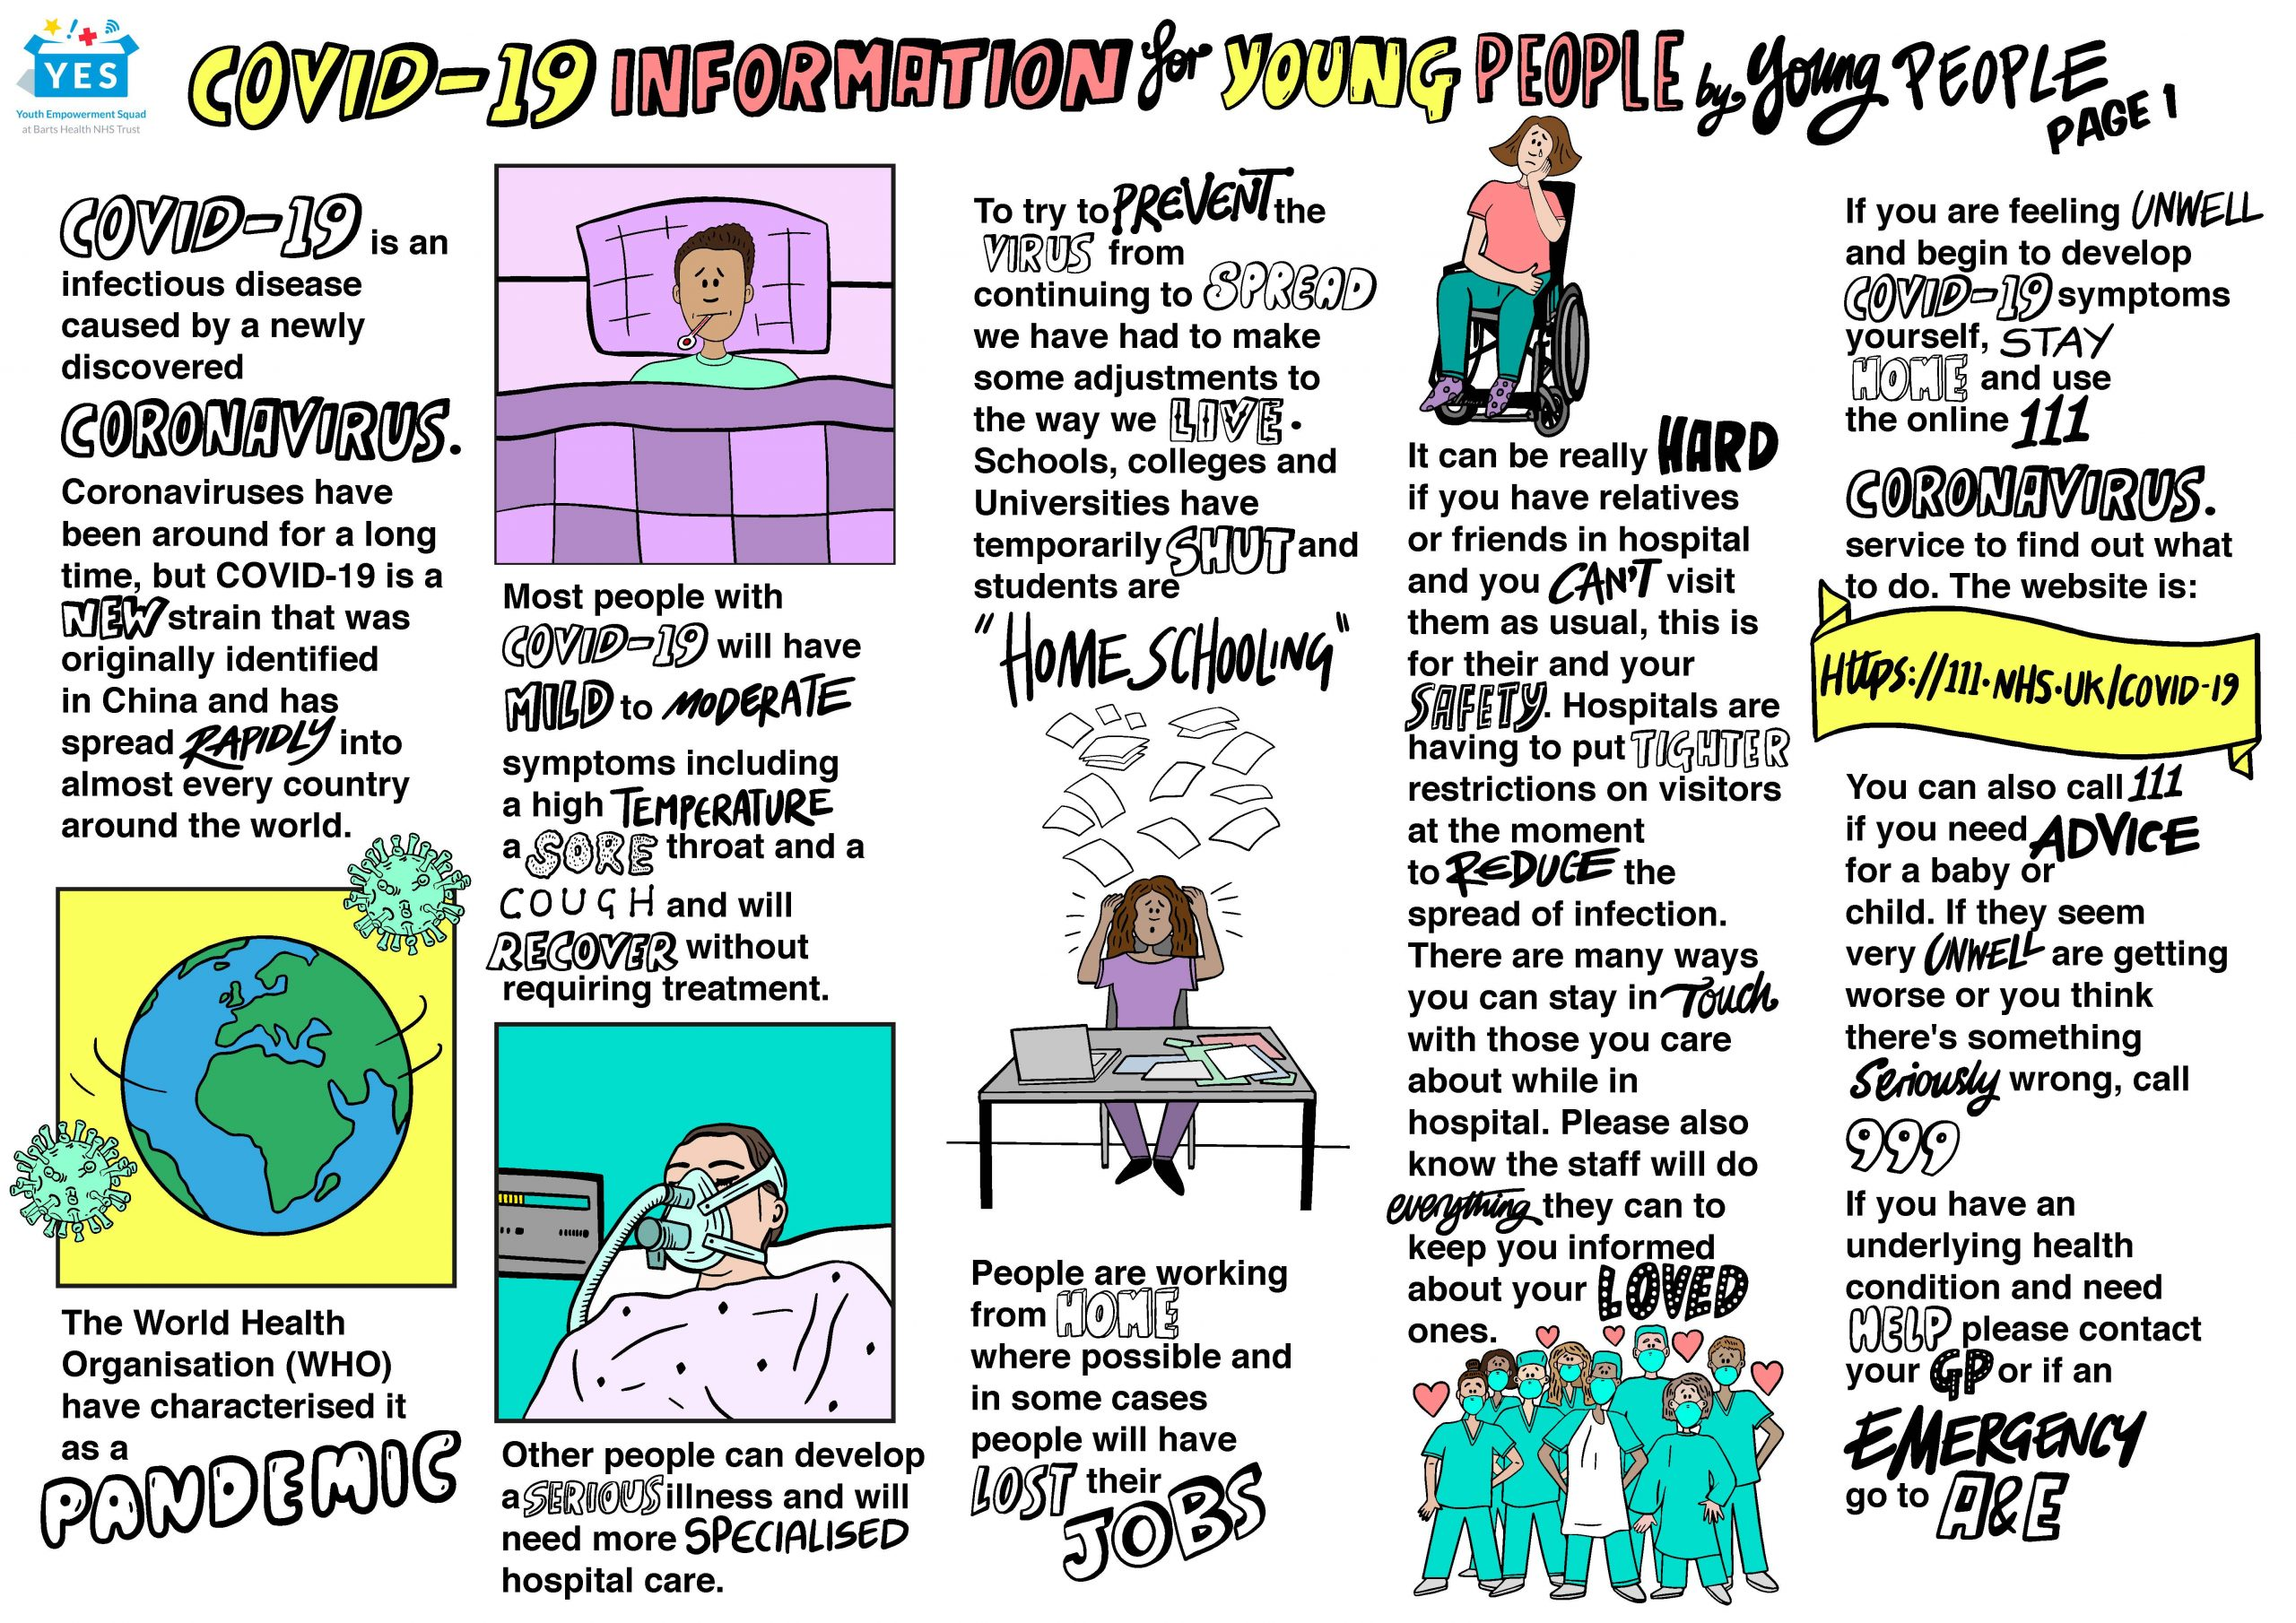 Picture of the leaflet for young people